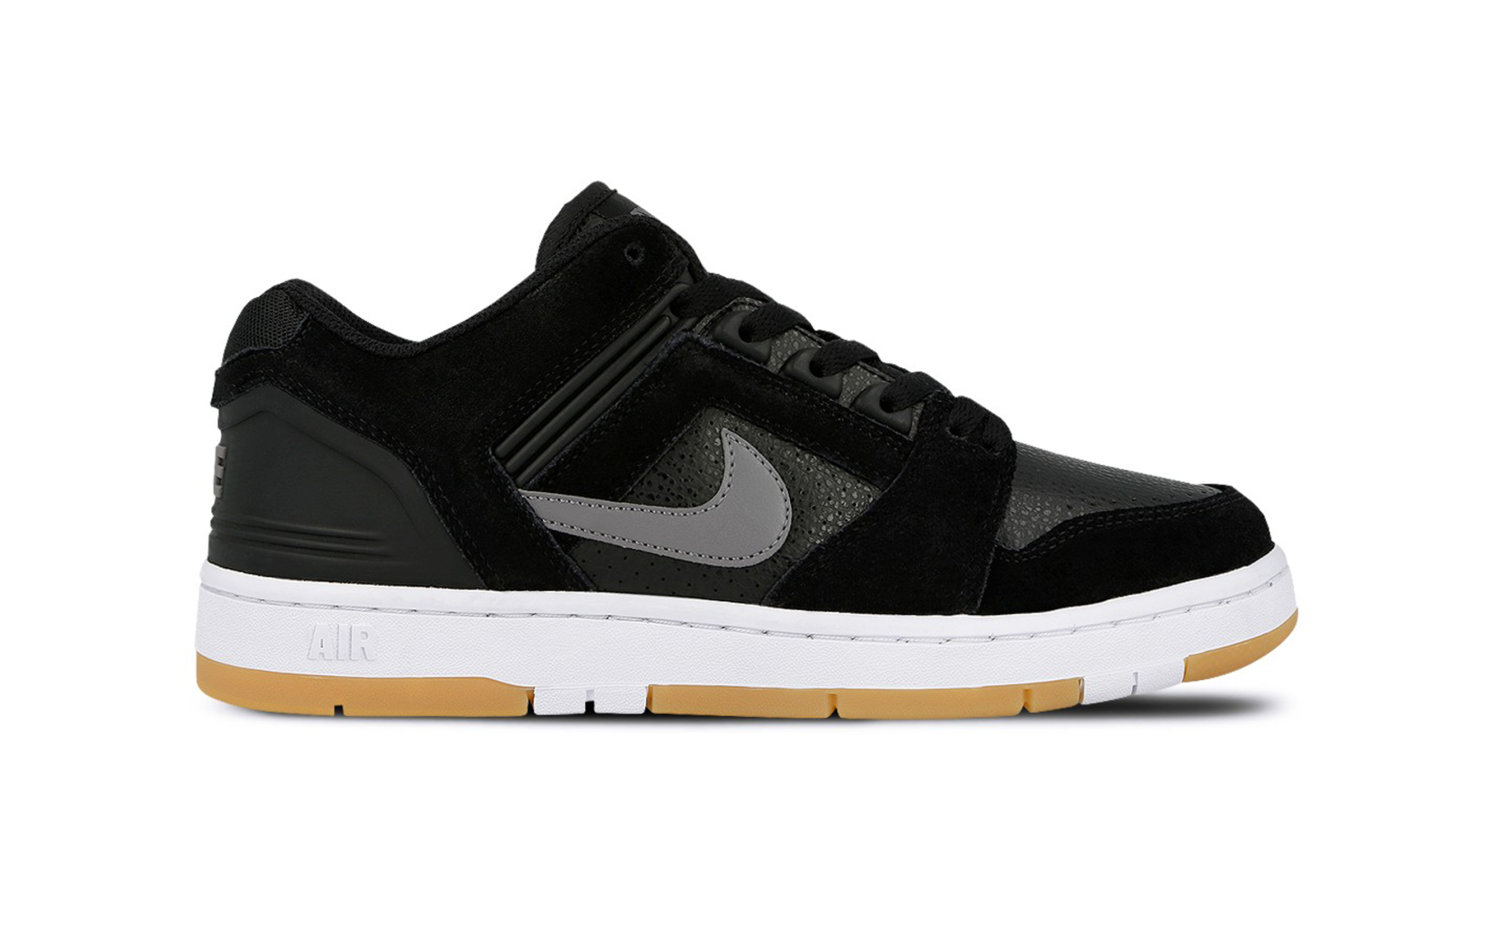 Nike SB Air Force II Low (AO0300-001)